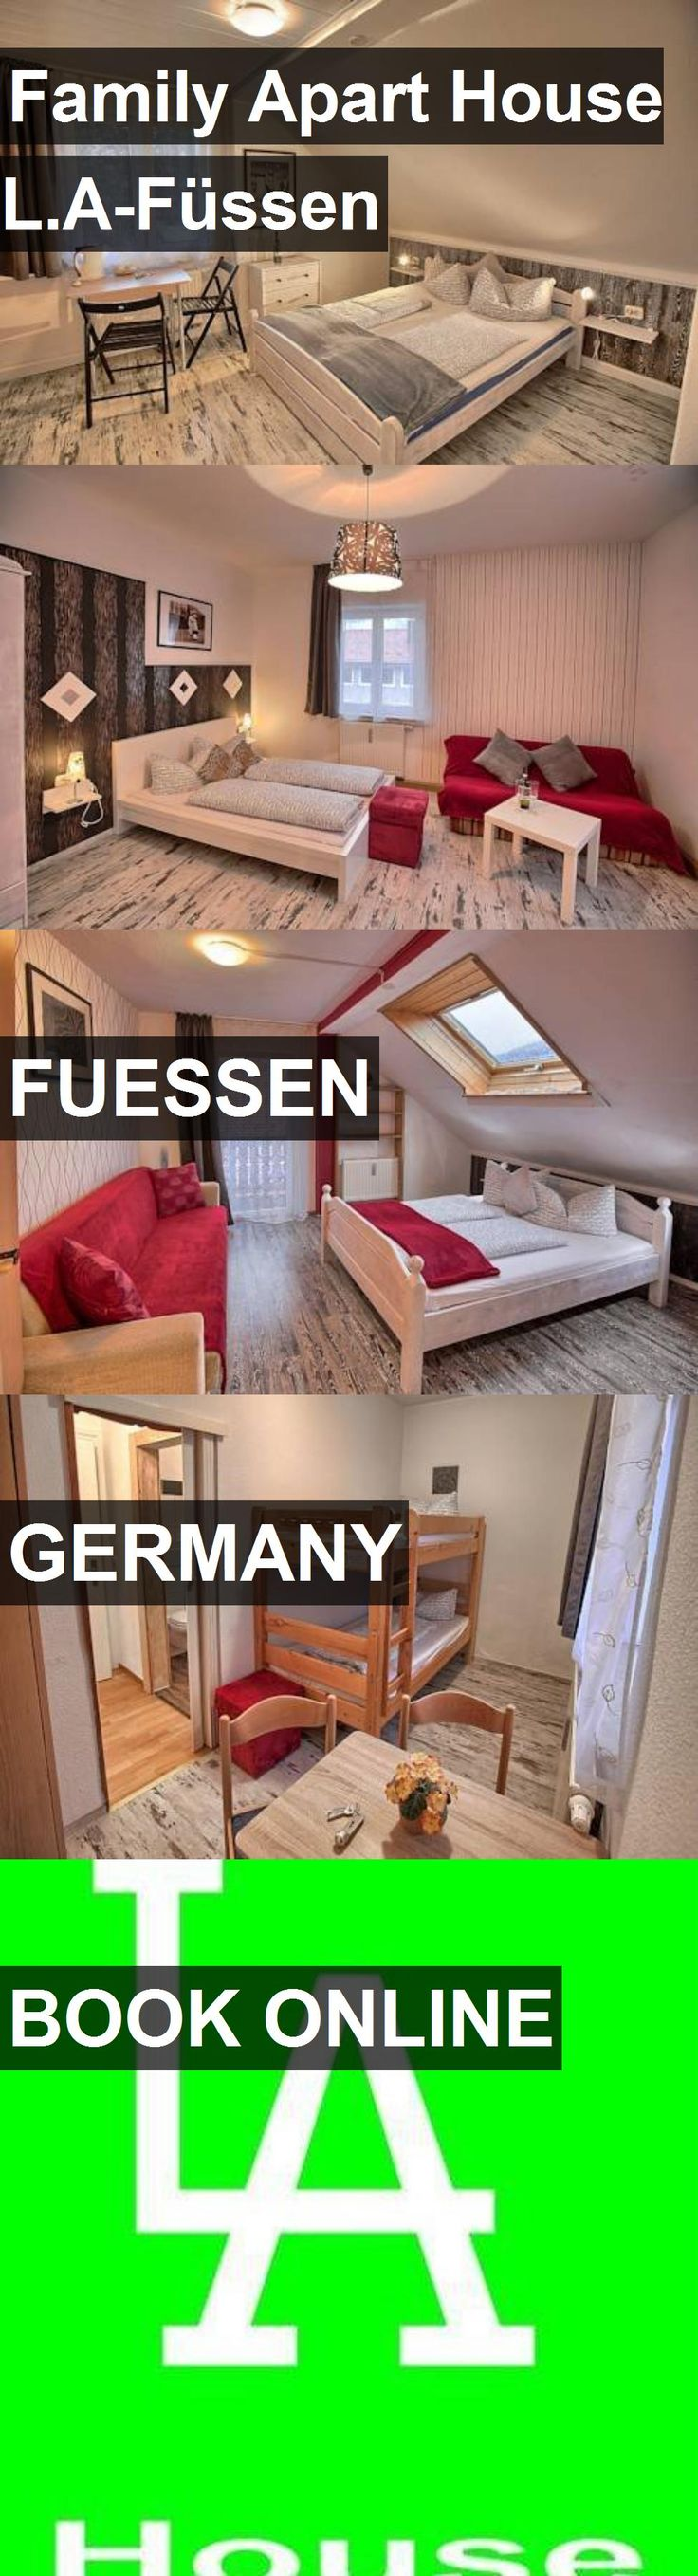 Hotel Family Apart House L.A-Füssen in Fuessen, Germany. For more information, photos, reviews and best prices please follow the link. #Germany #Fuessen #FamilyApartHouseL.A-Füssen #hotel #travel #vacation